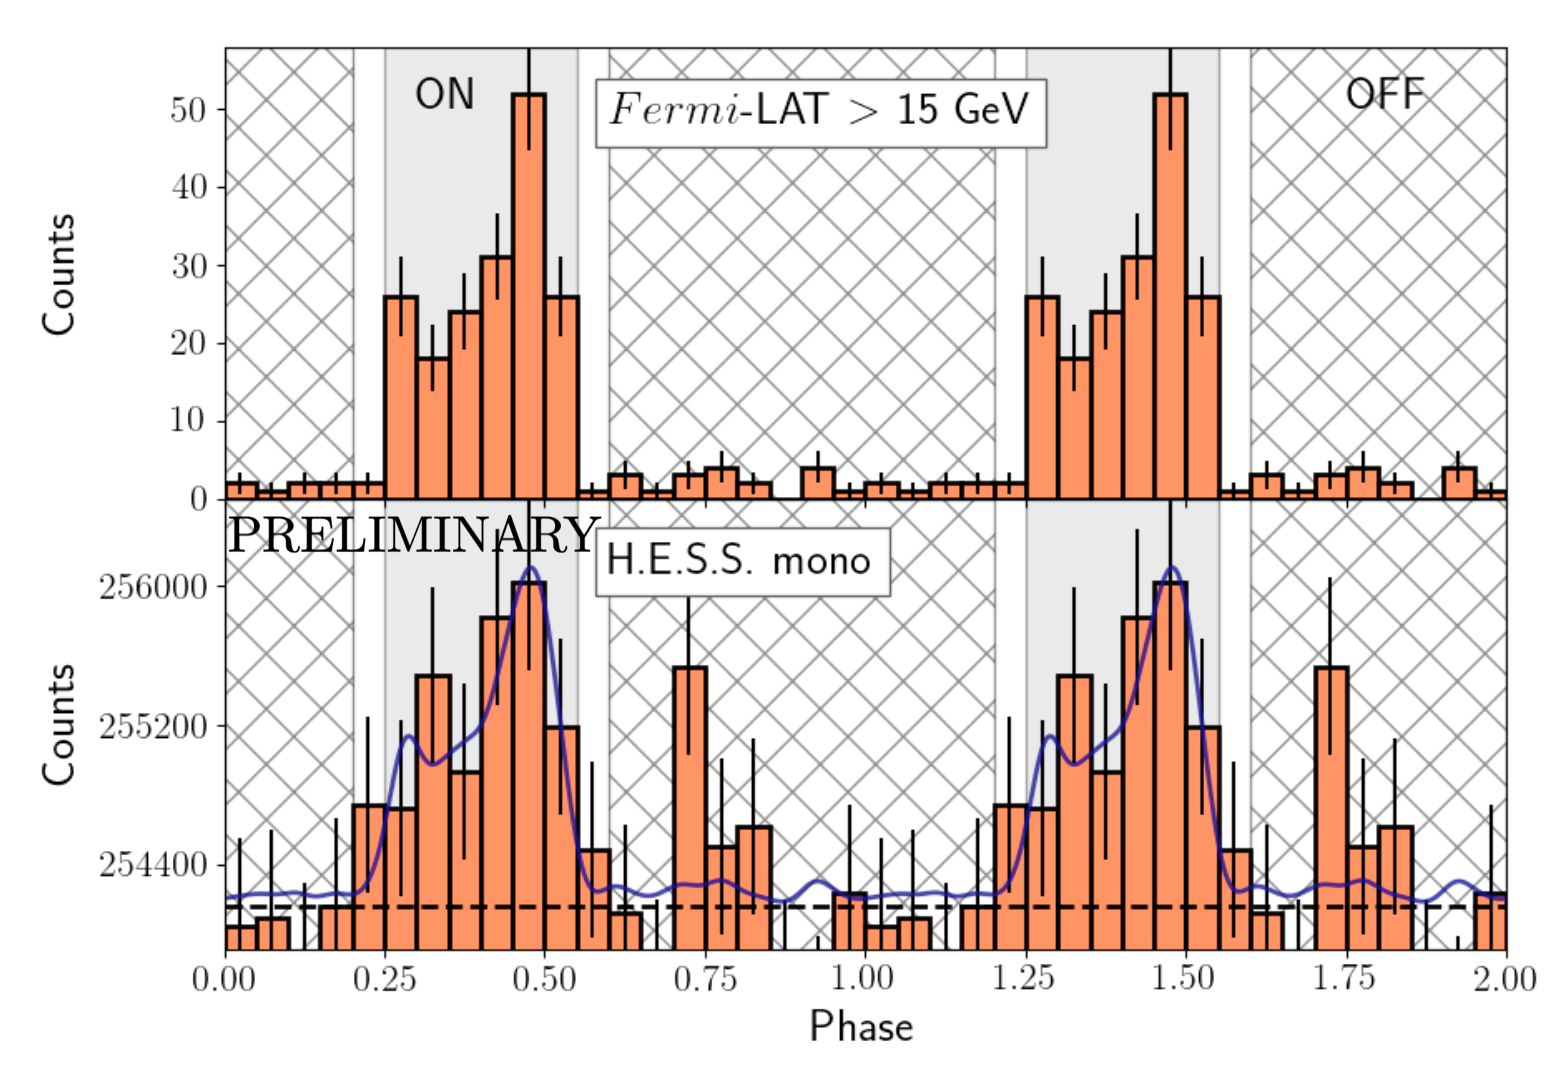 Histogram of phases for two periods with